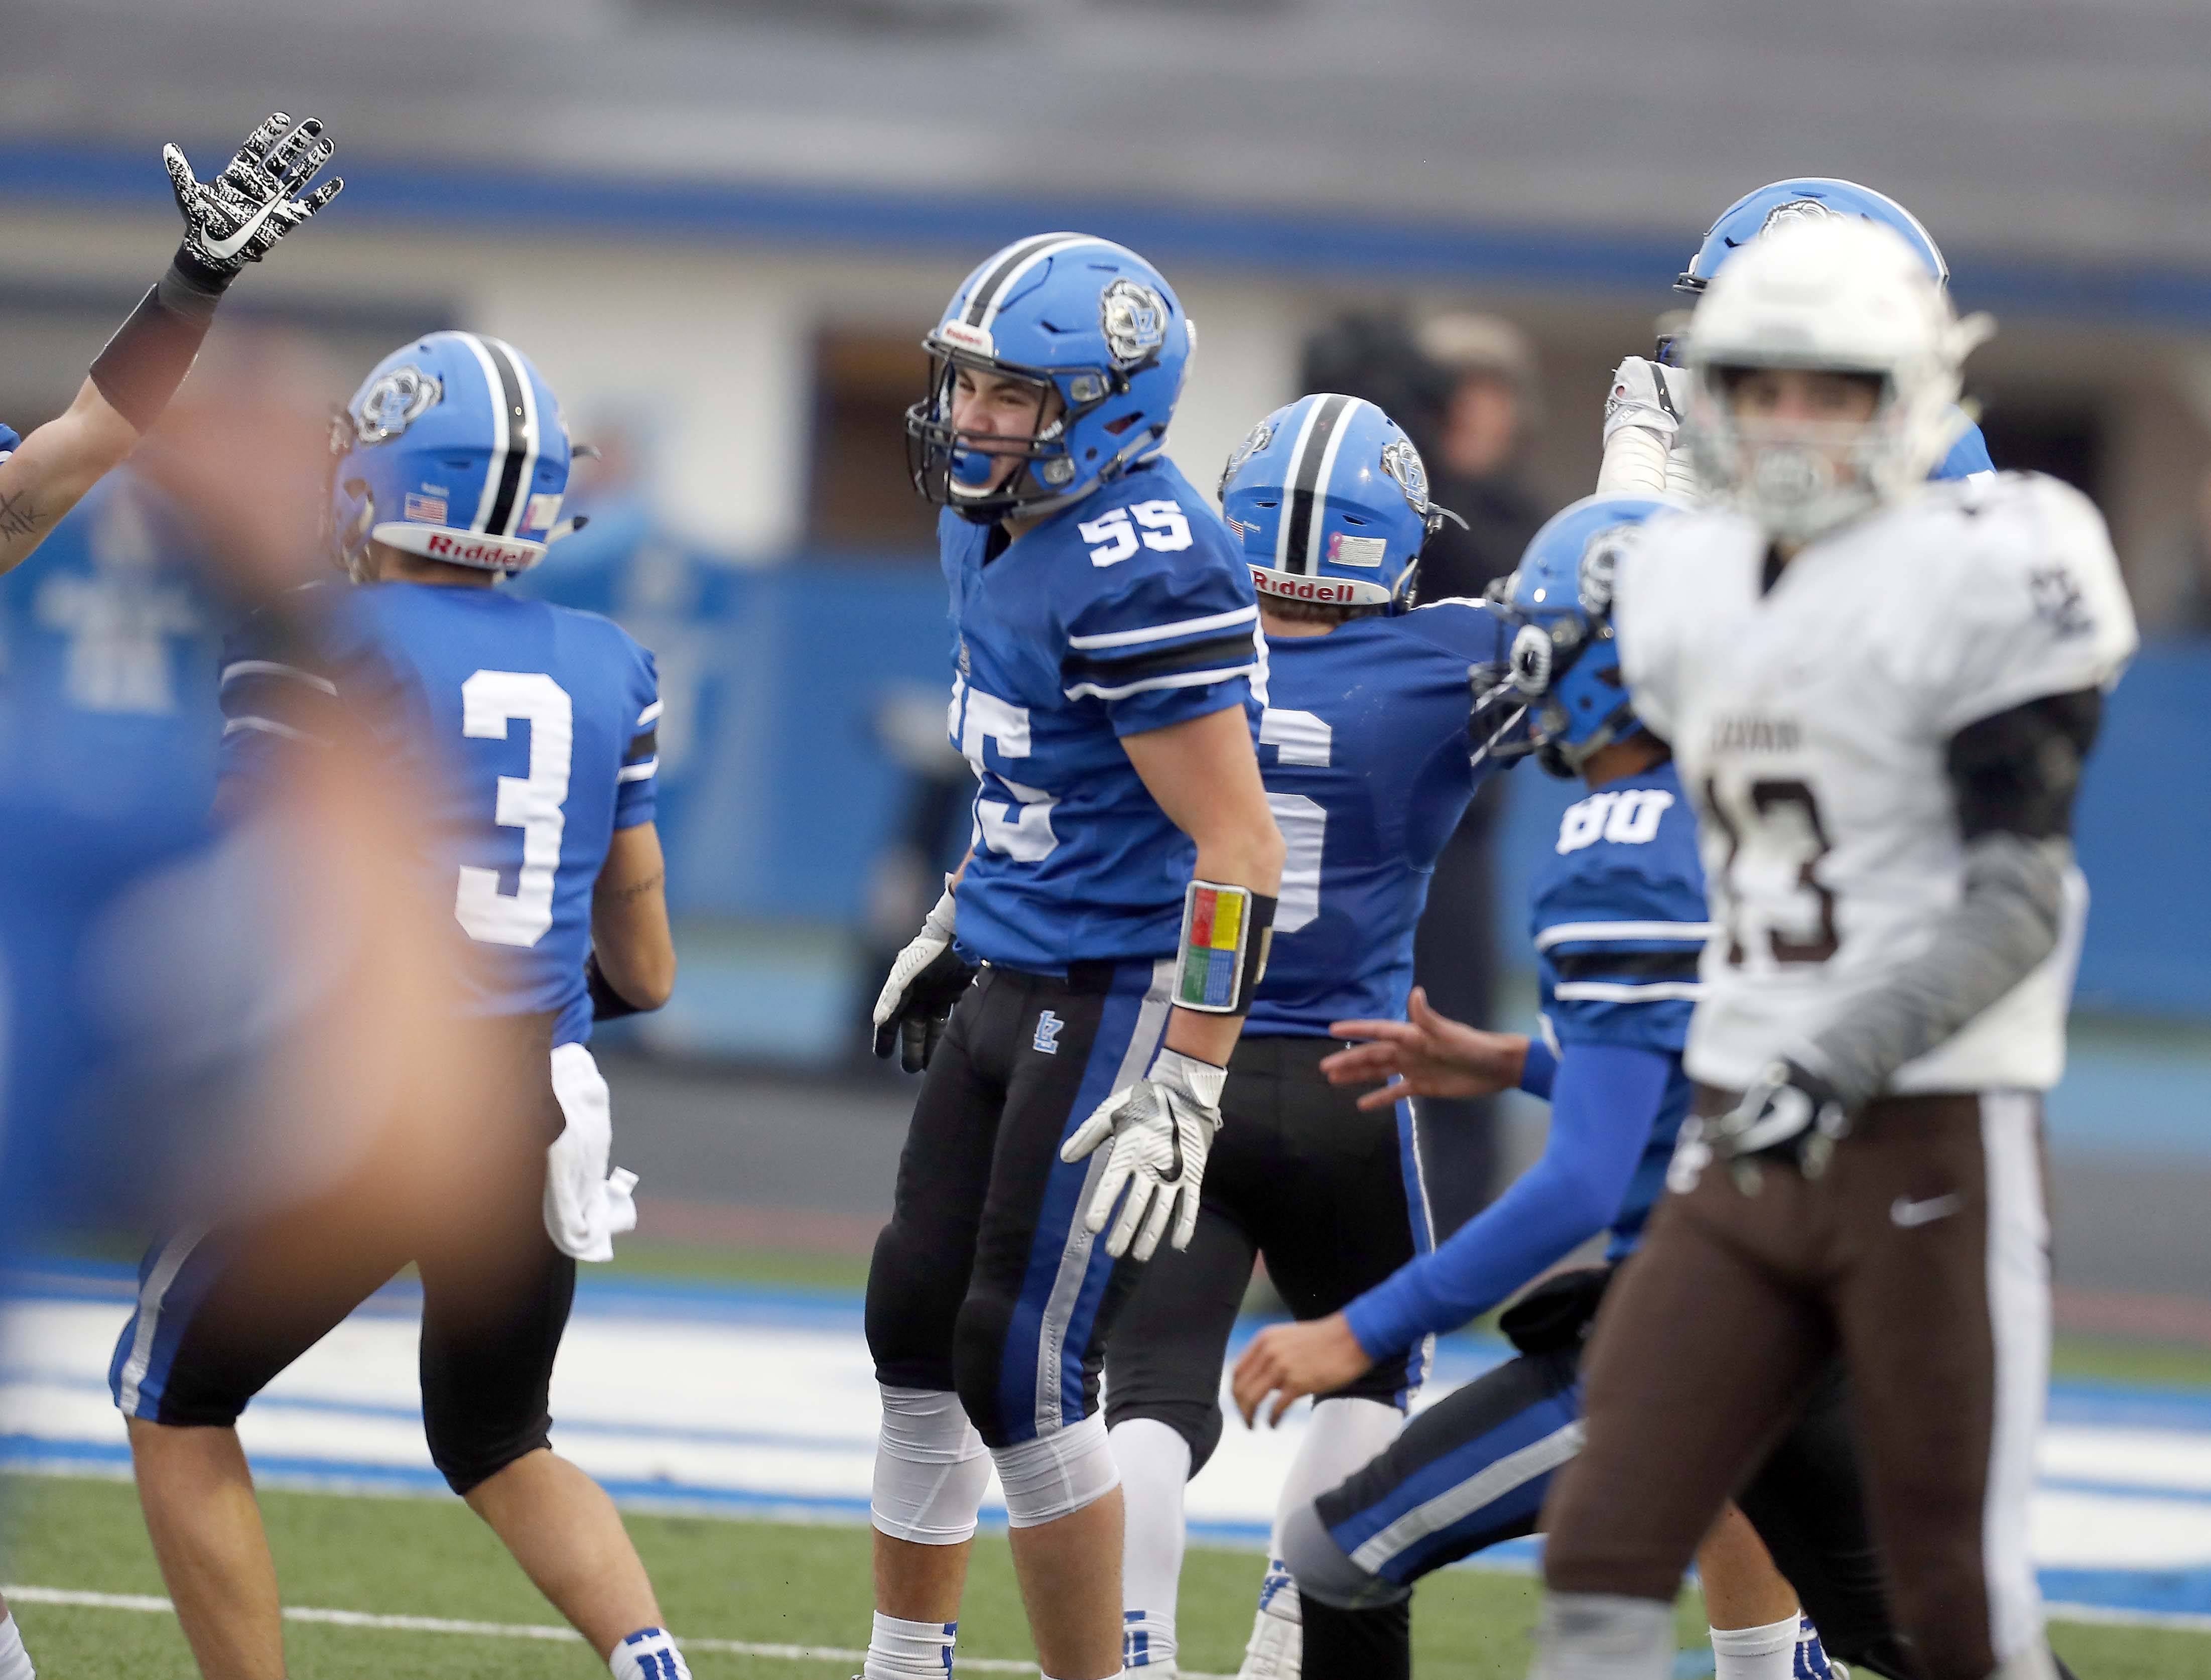 Lake Zurich's Bennett Amoroso (55) and his teammates celebrate a fourth-quarter interception Saturday during the Class 7A state semifinals against visiting Mt. Carmel.